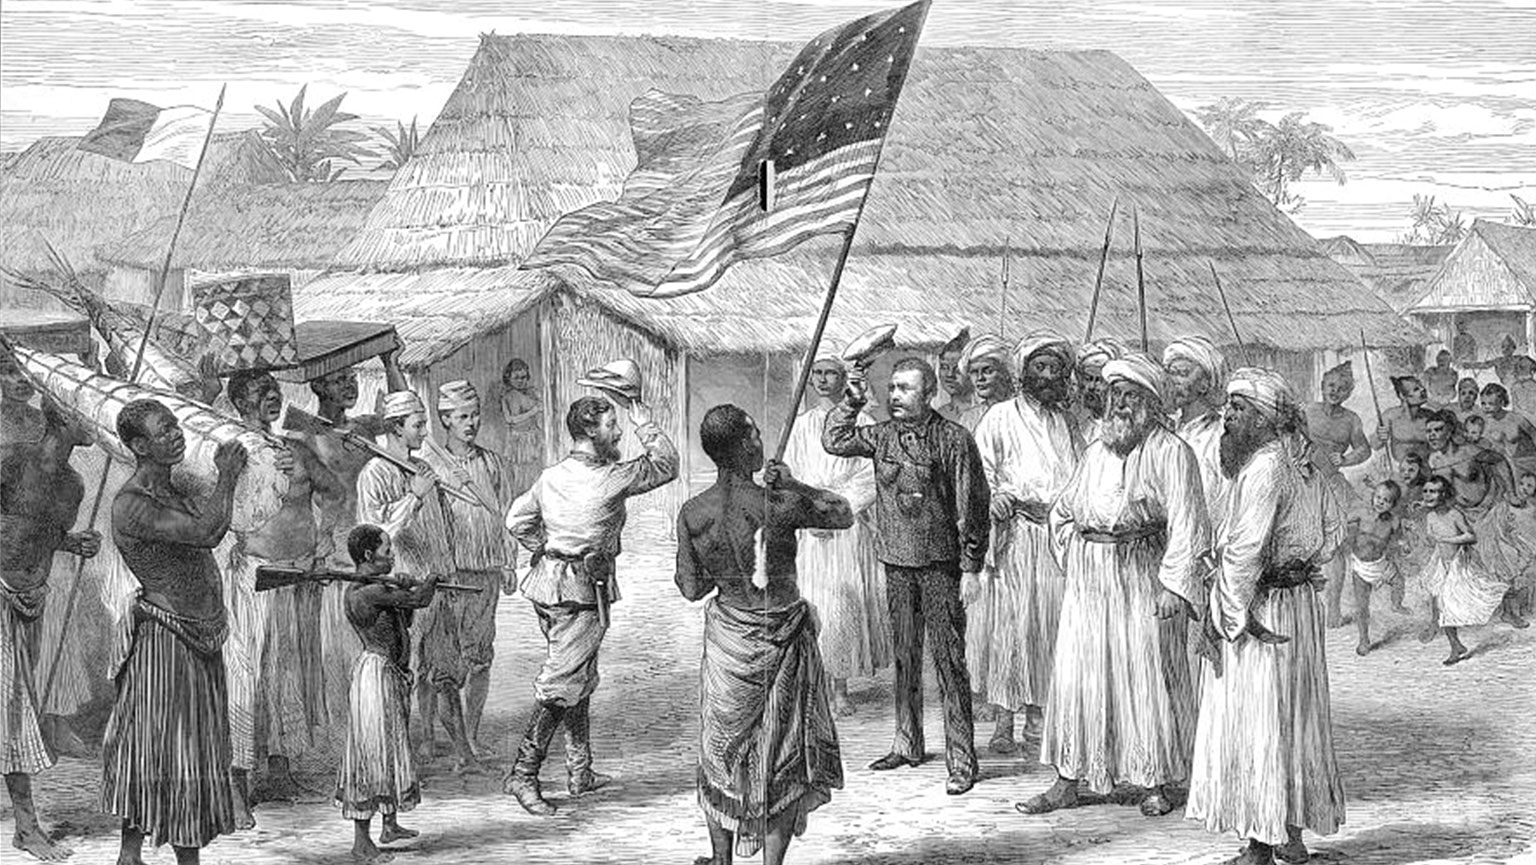 Dr. Livingstone and Mary Kingsley in Africa